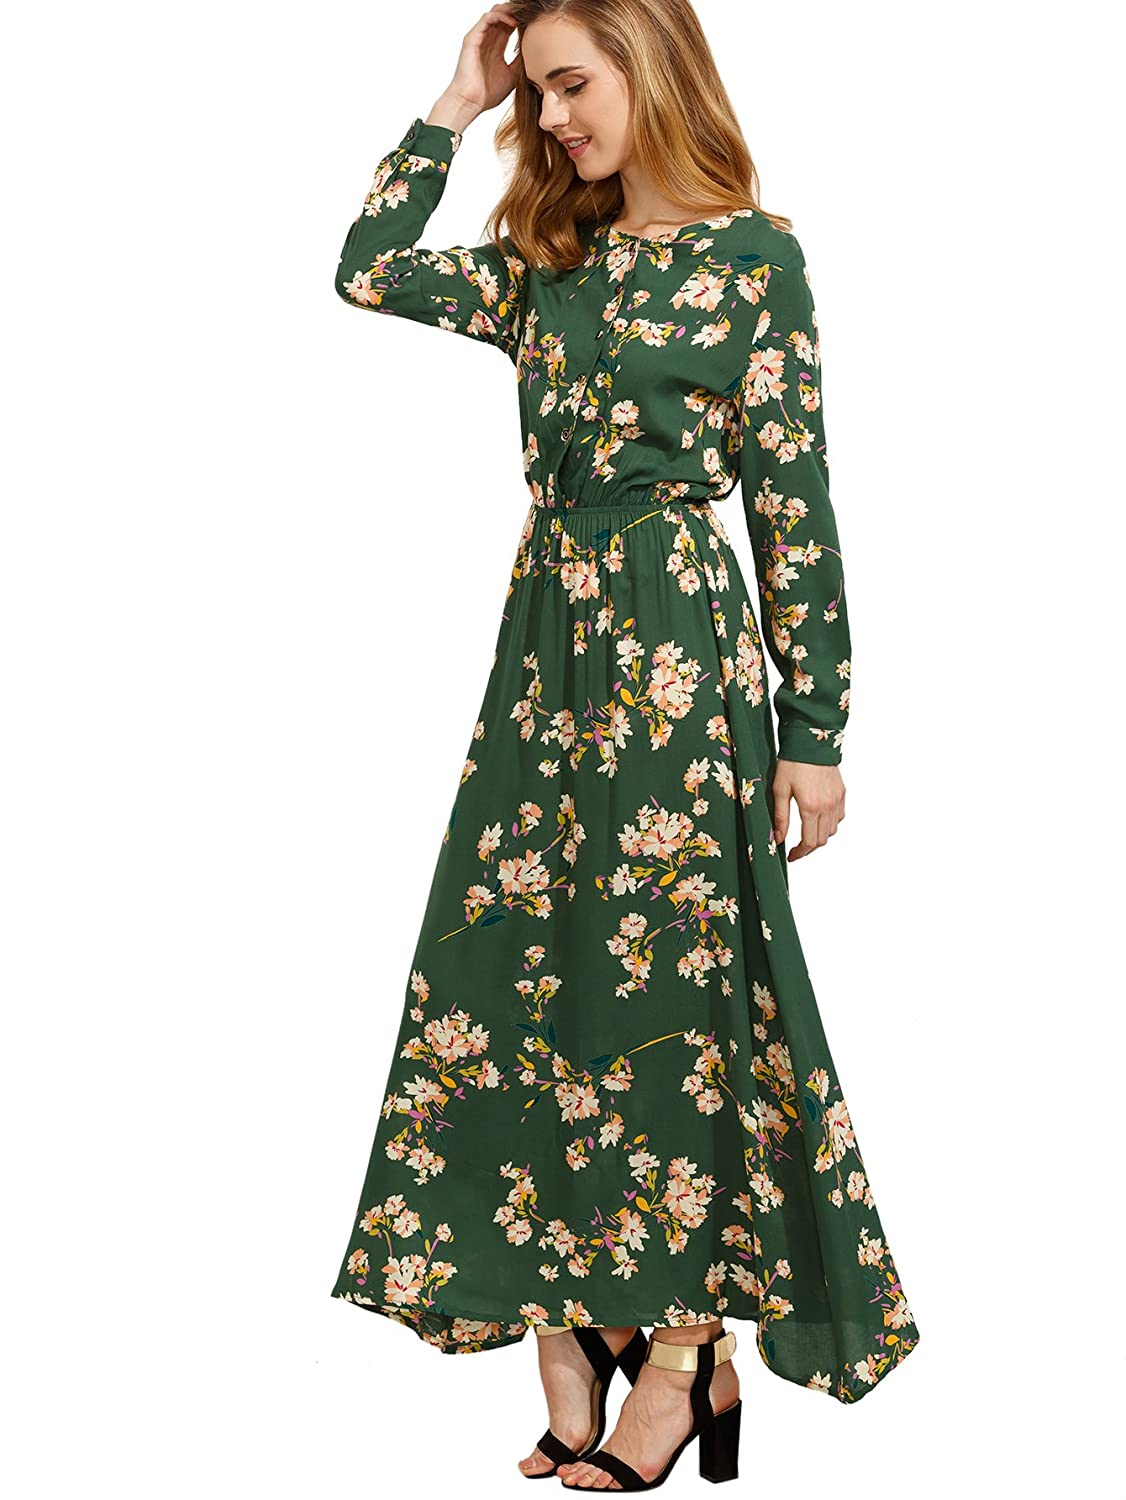 60s 70s Plus Size Dresses, Clothing, Costumes Floerns Womens Long Sleeve Floral Print Button Casual Maxi Dress $39.99 AT vintagedancer.com